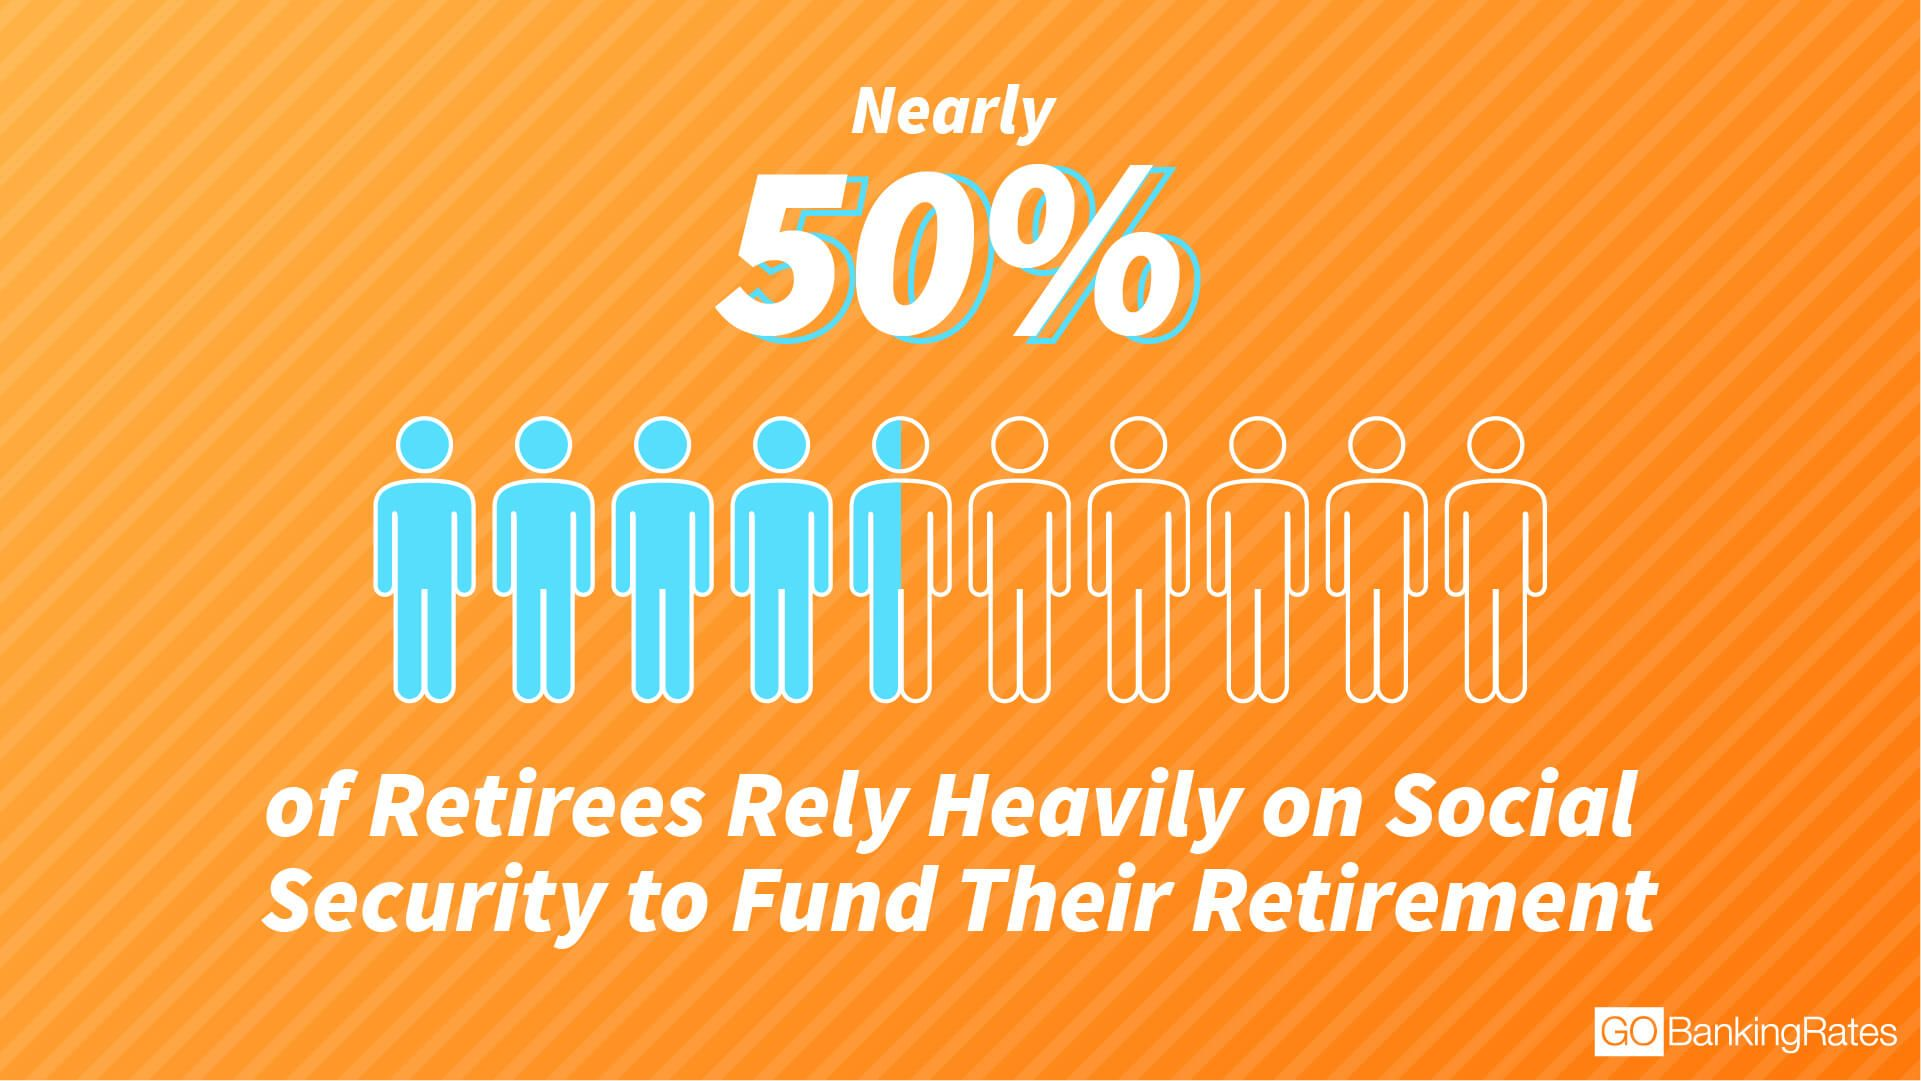 50% of retirees rely heavily on social security income